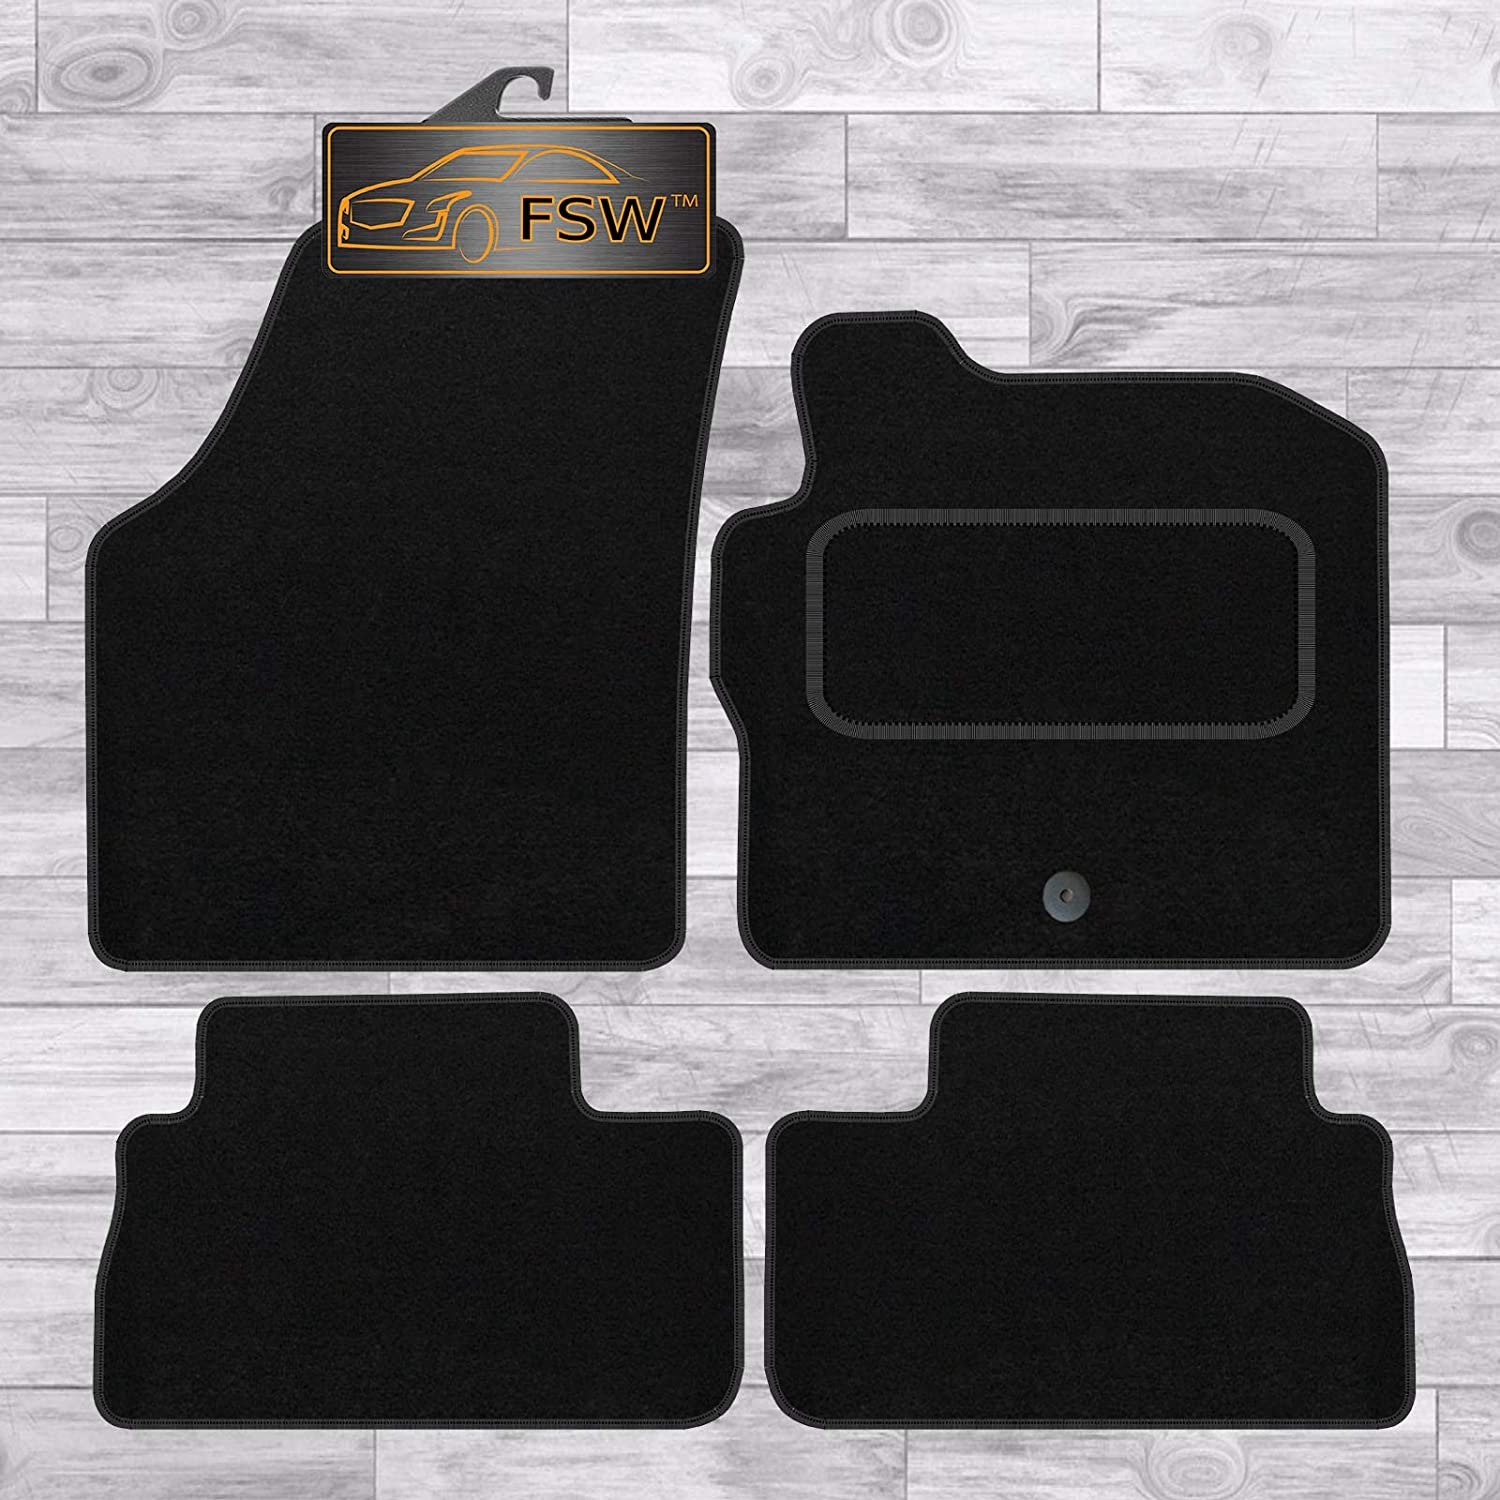 FSW Freelander 2006-2013 Mk 2 Fully Tailored Classic Carpet Car Floor Mats Black